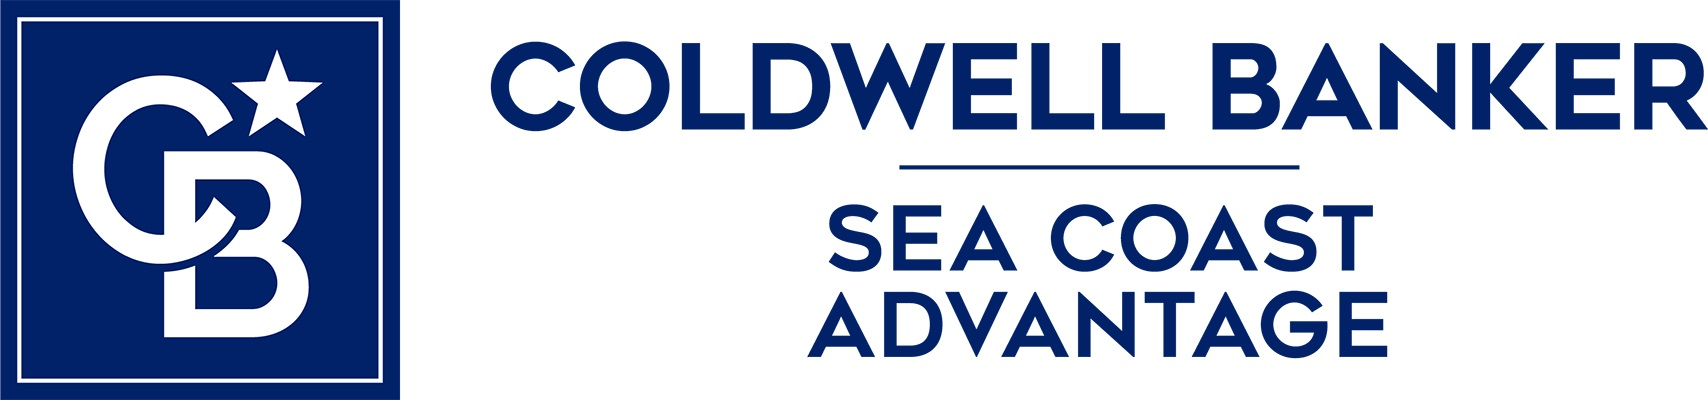 Tad Scott - Coldwell Banker Sea Coast Advantage Realty Logo